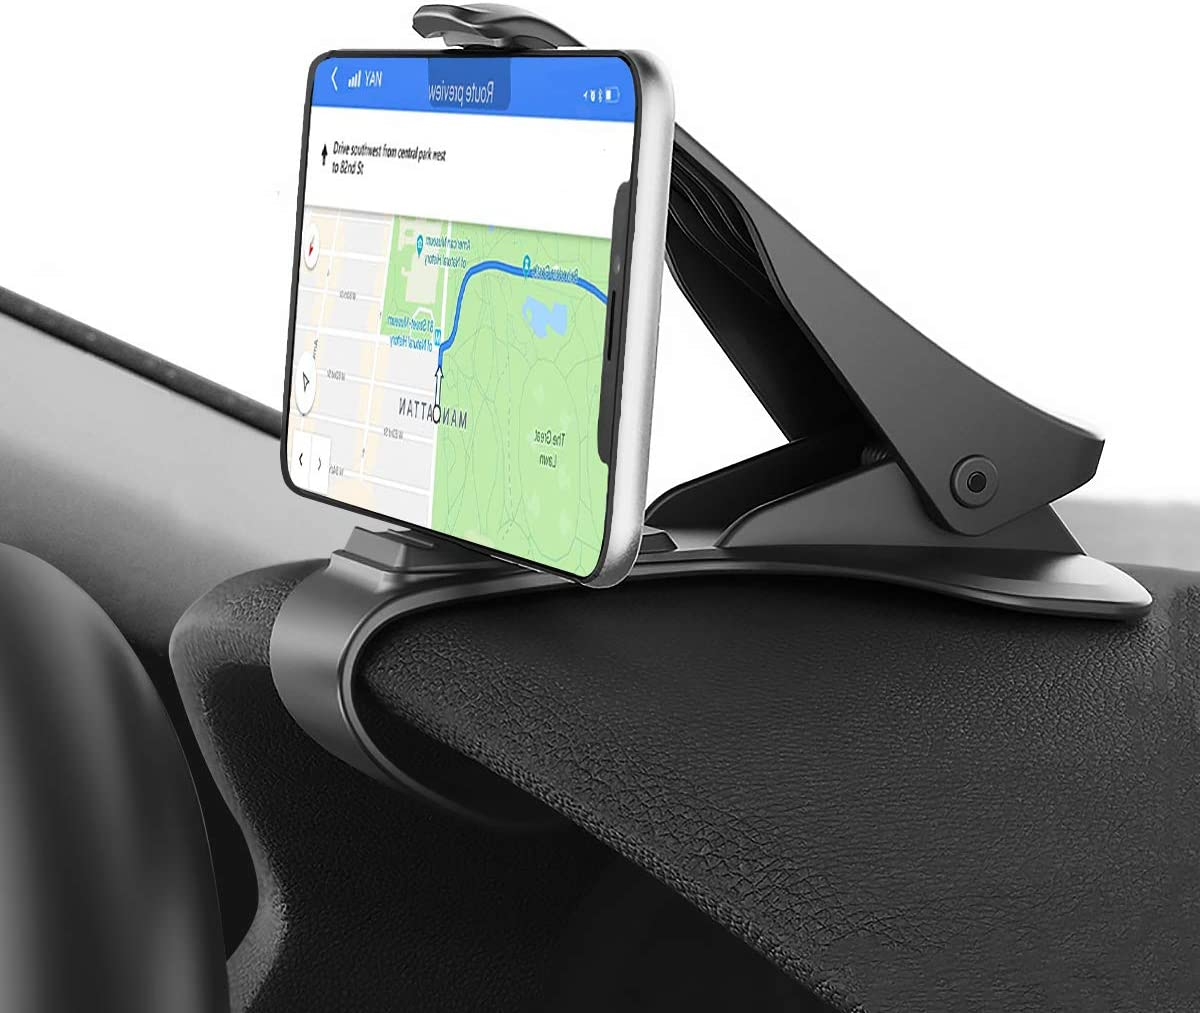 Phone Holder for Car, Hzrfun Cell Phone Holder for Car Dashboard Clip Non-Slip Durable Compatible with iPhone Xs Max/XR/XS/X/8 Plus/8/7 Plus/7 Samsung Galaxy S10/S9/S8 and More